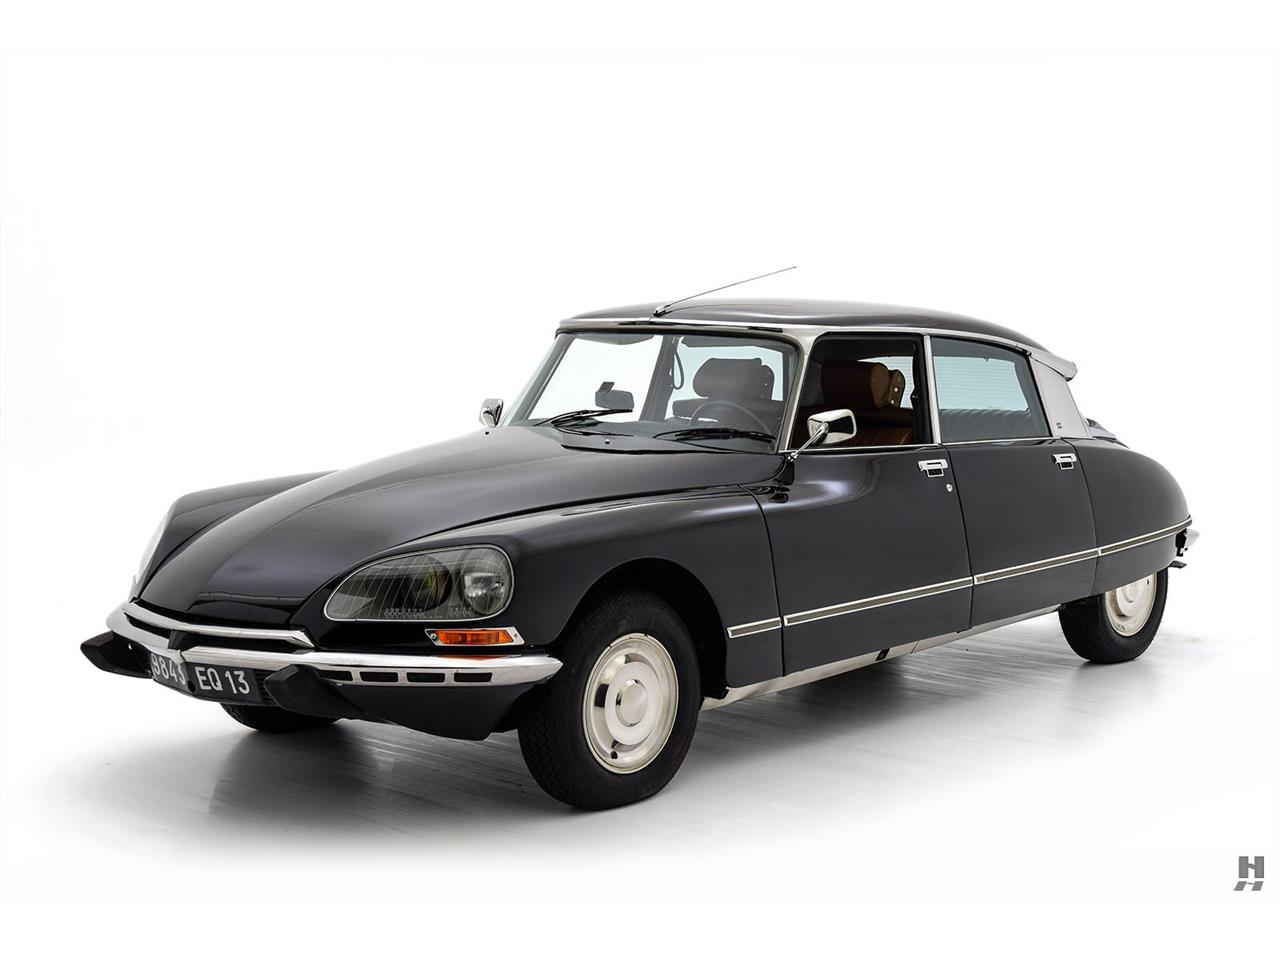 Large Picture of Classic '72 Citroen DS21 Pallas - $59,500.00 Offered by Hyman Ltd. Classic Cars - P3WY